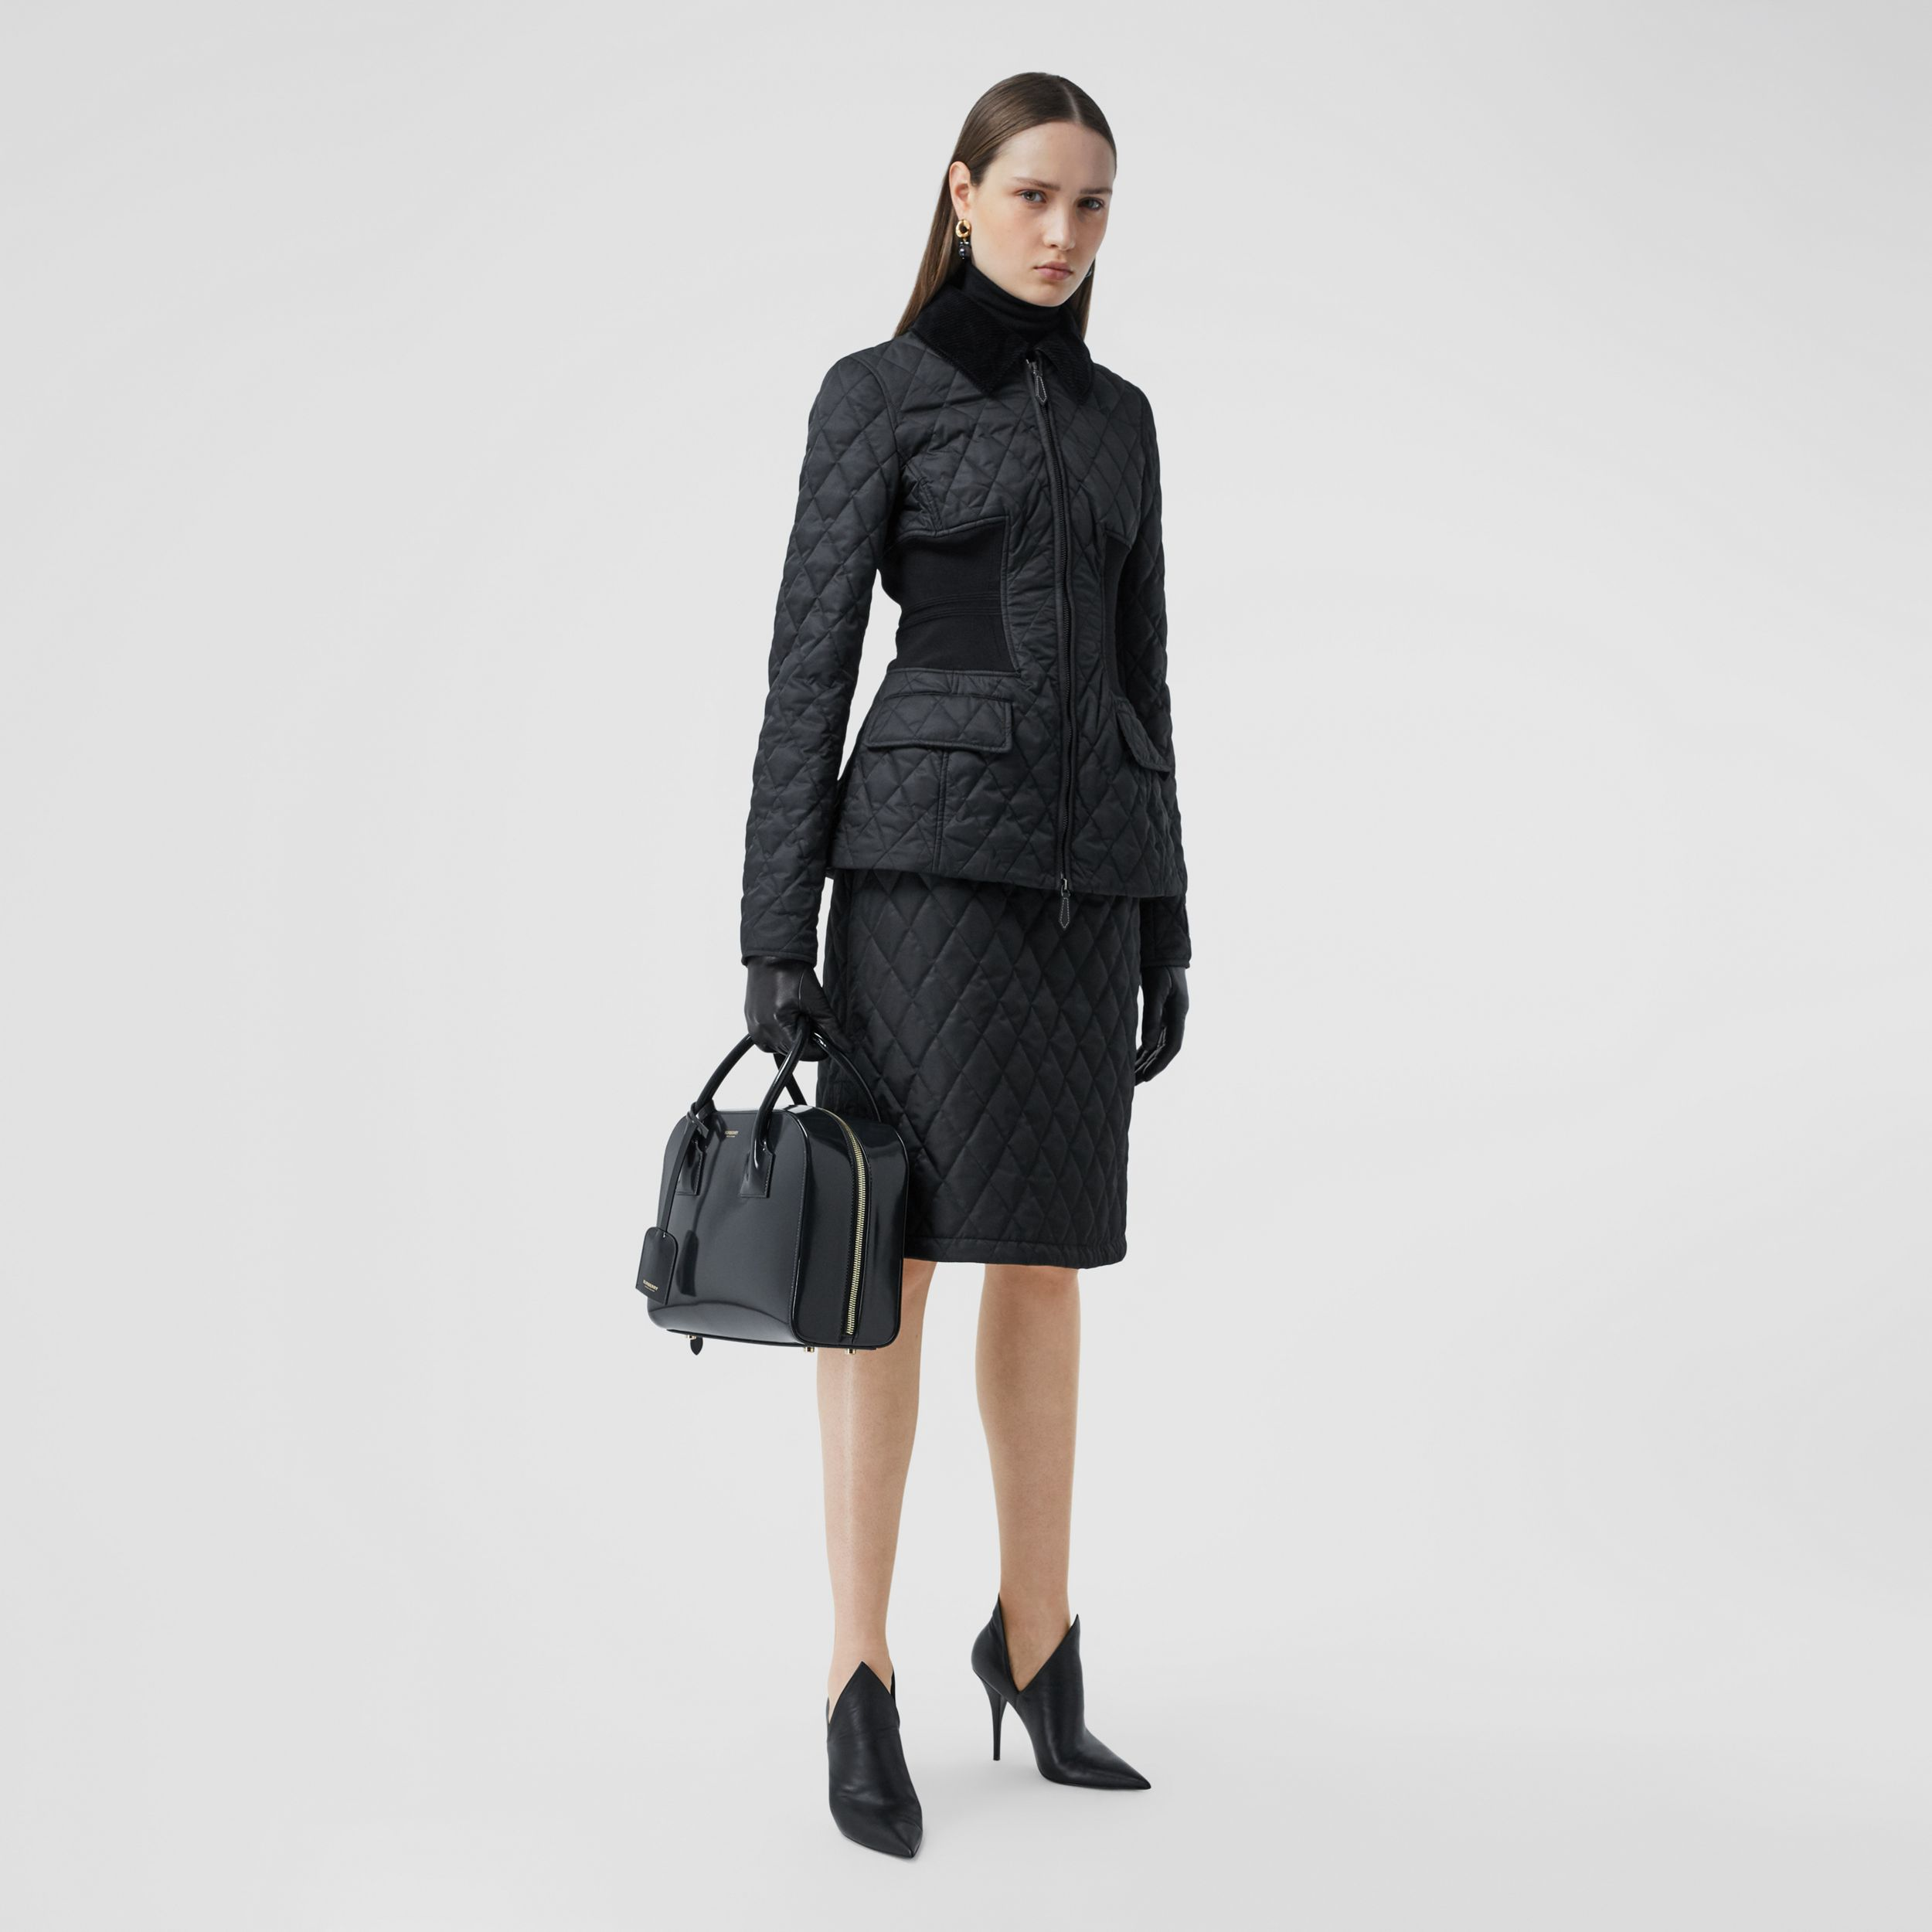 Diamond Quilted A-line Skirt in Black - Women | Burberry - 1